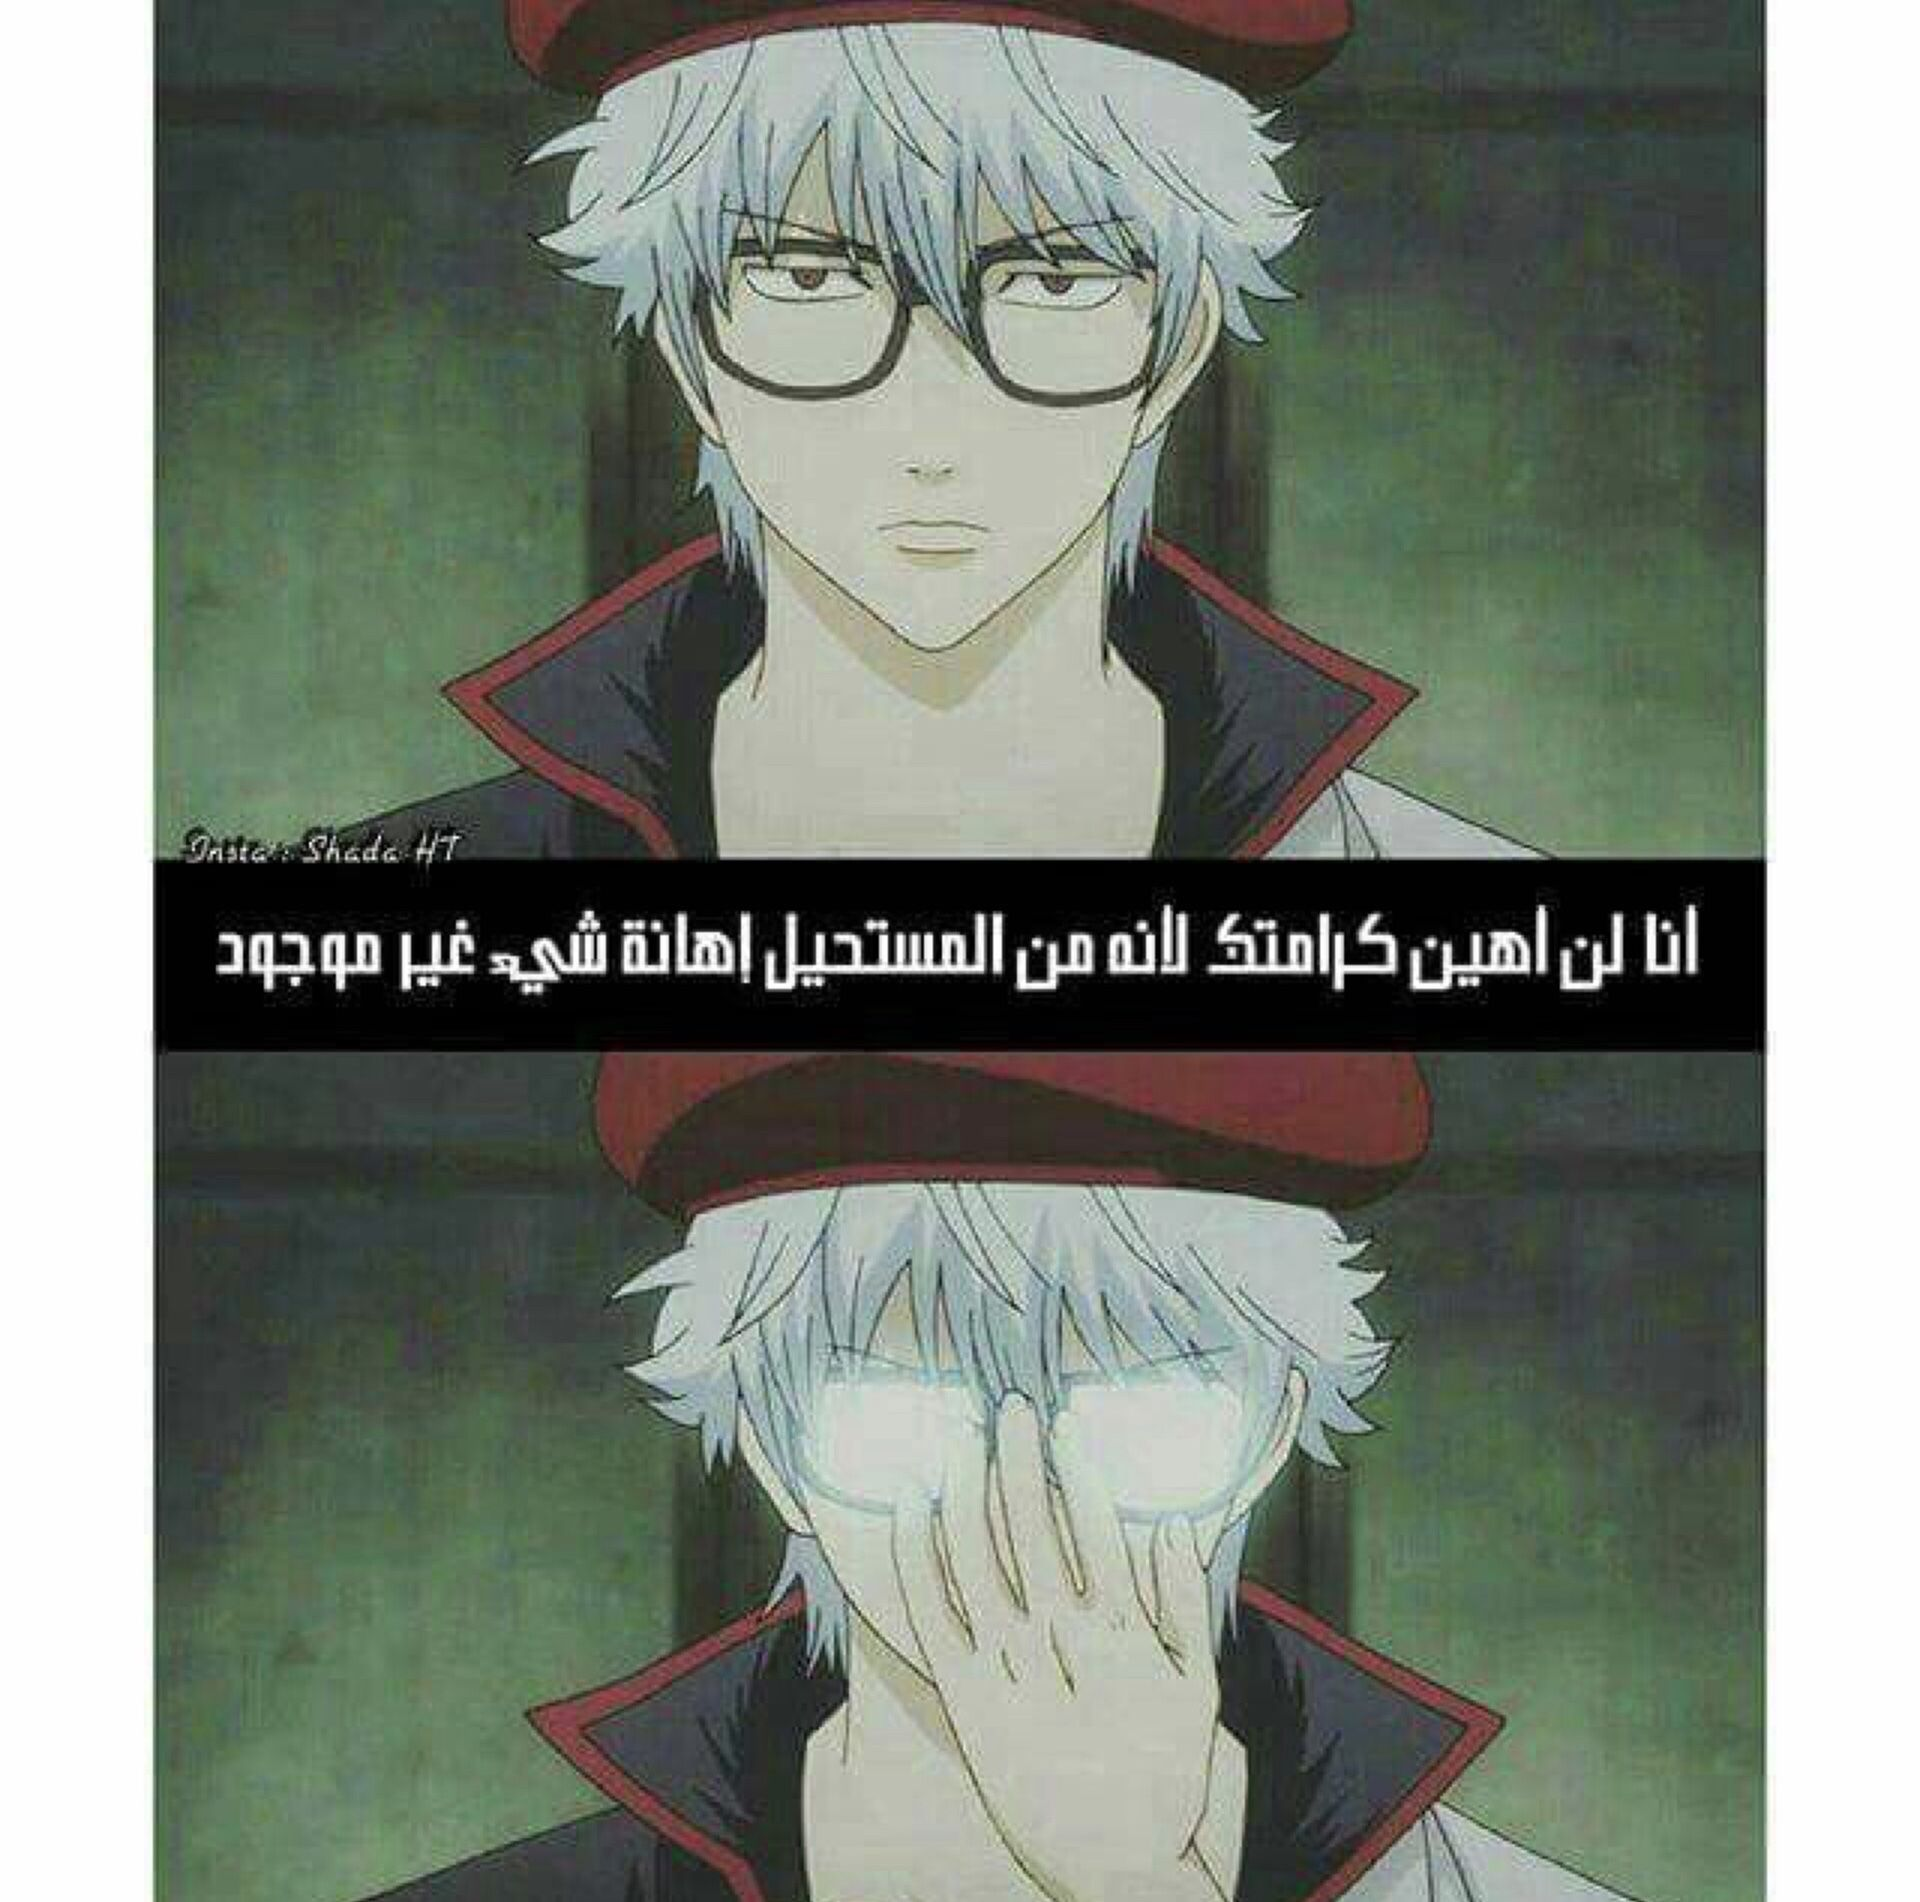 خخ ومن المستحيل له الوجود Funny Photo Memes Anime Funny Funny Picture Jokes